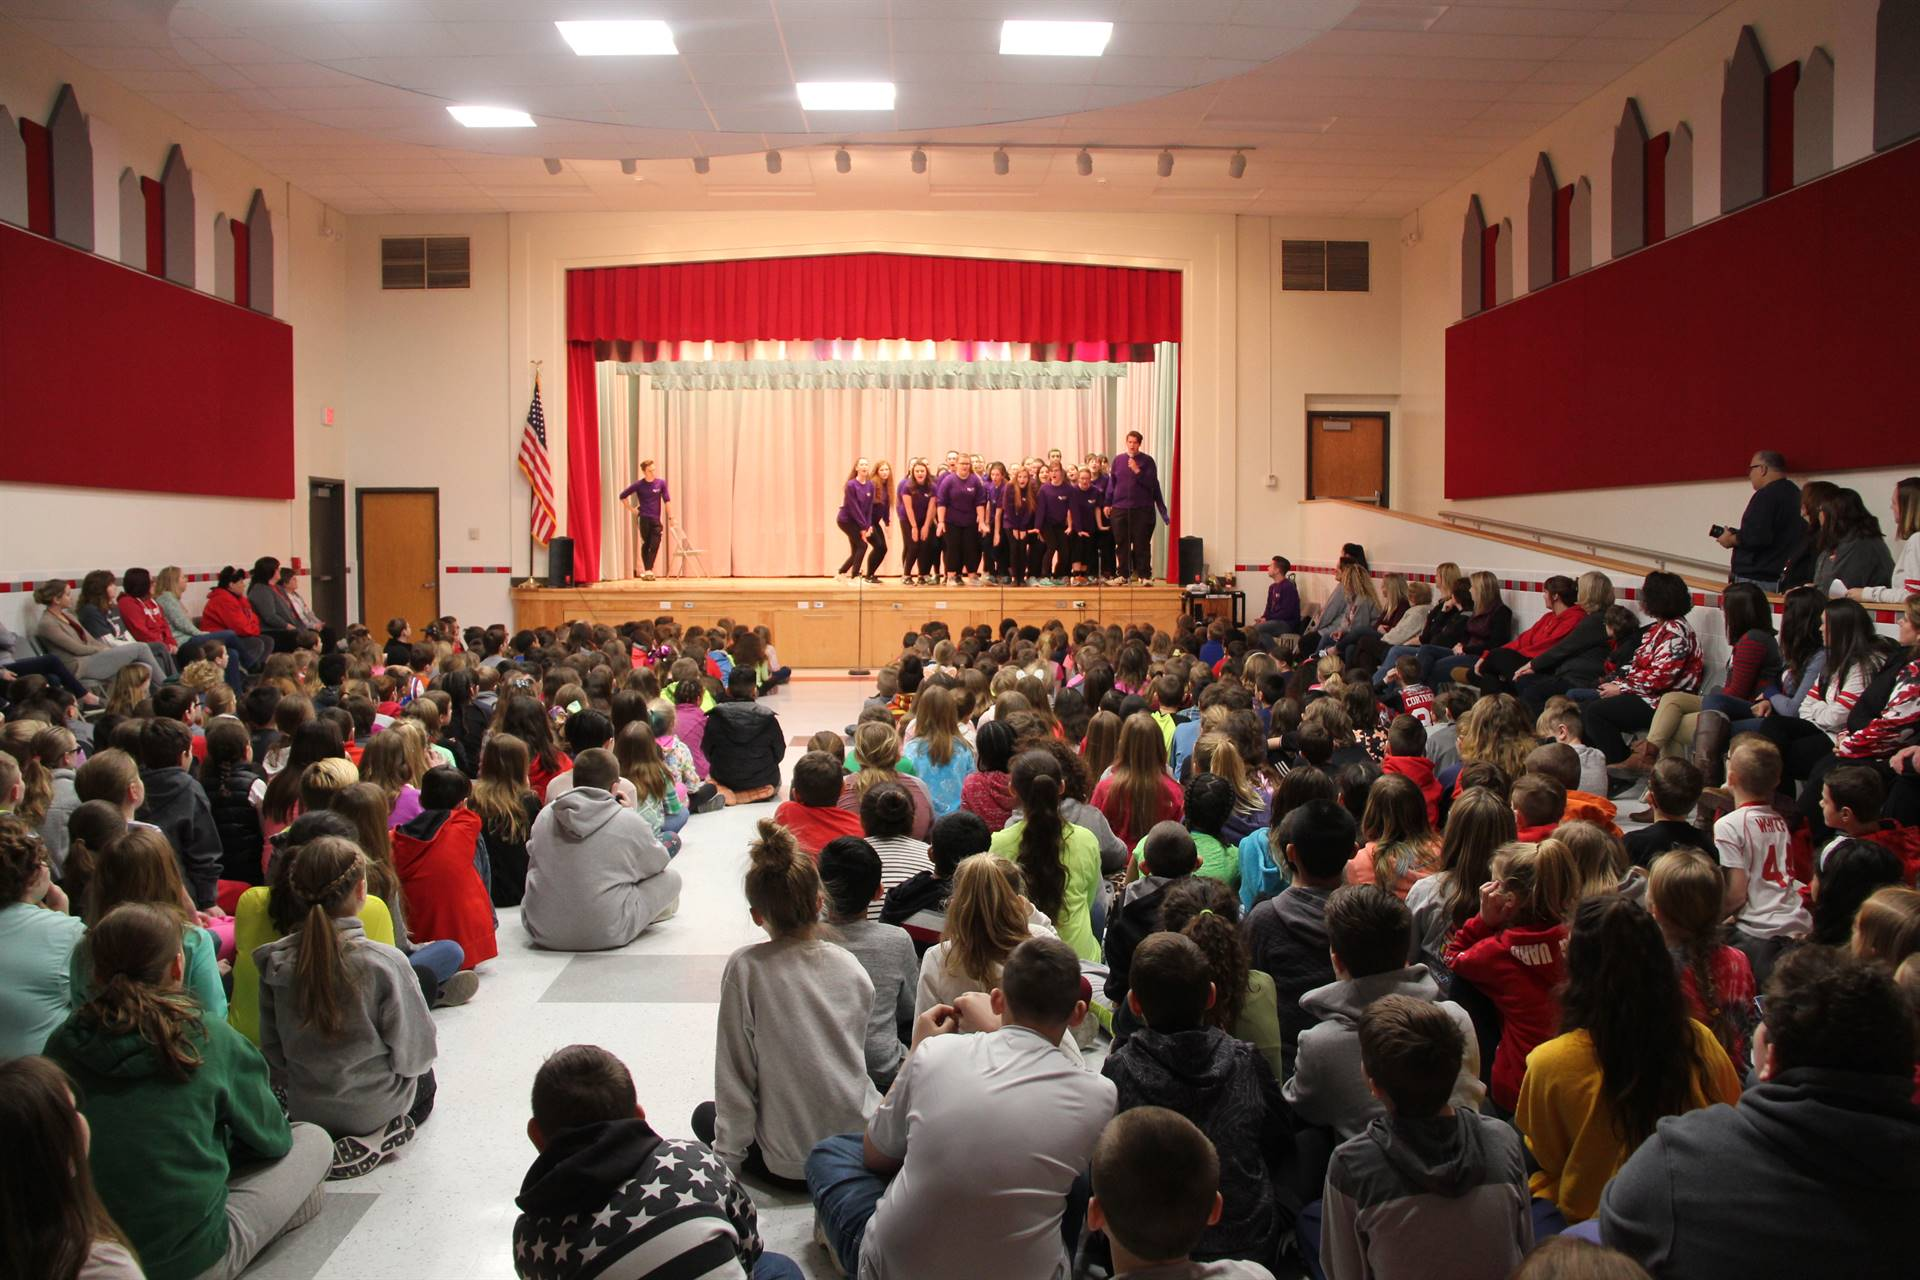 Cinderella Preview Performance at Chenango Bridge Elementary 4